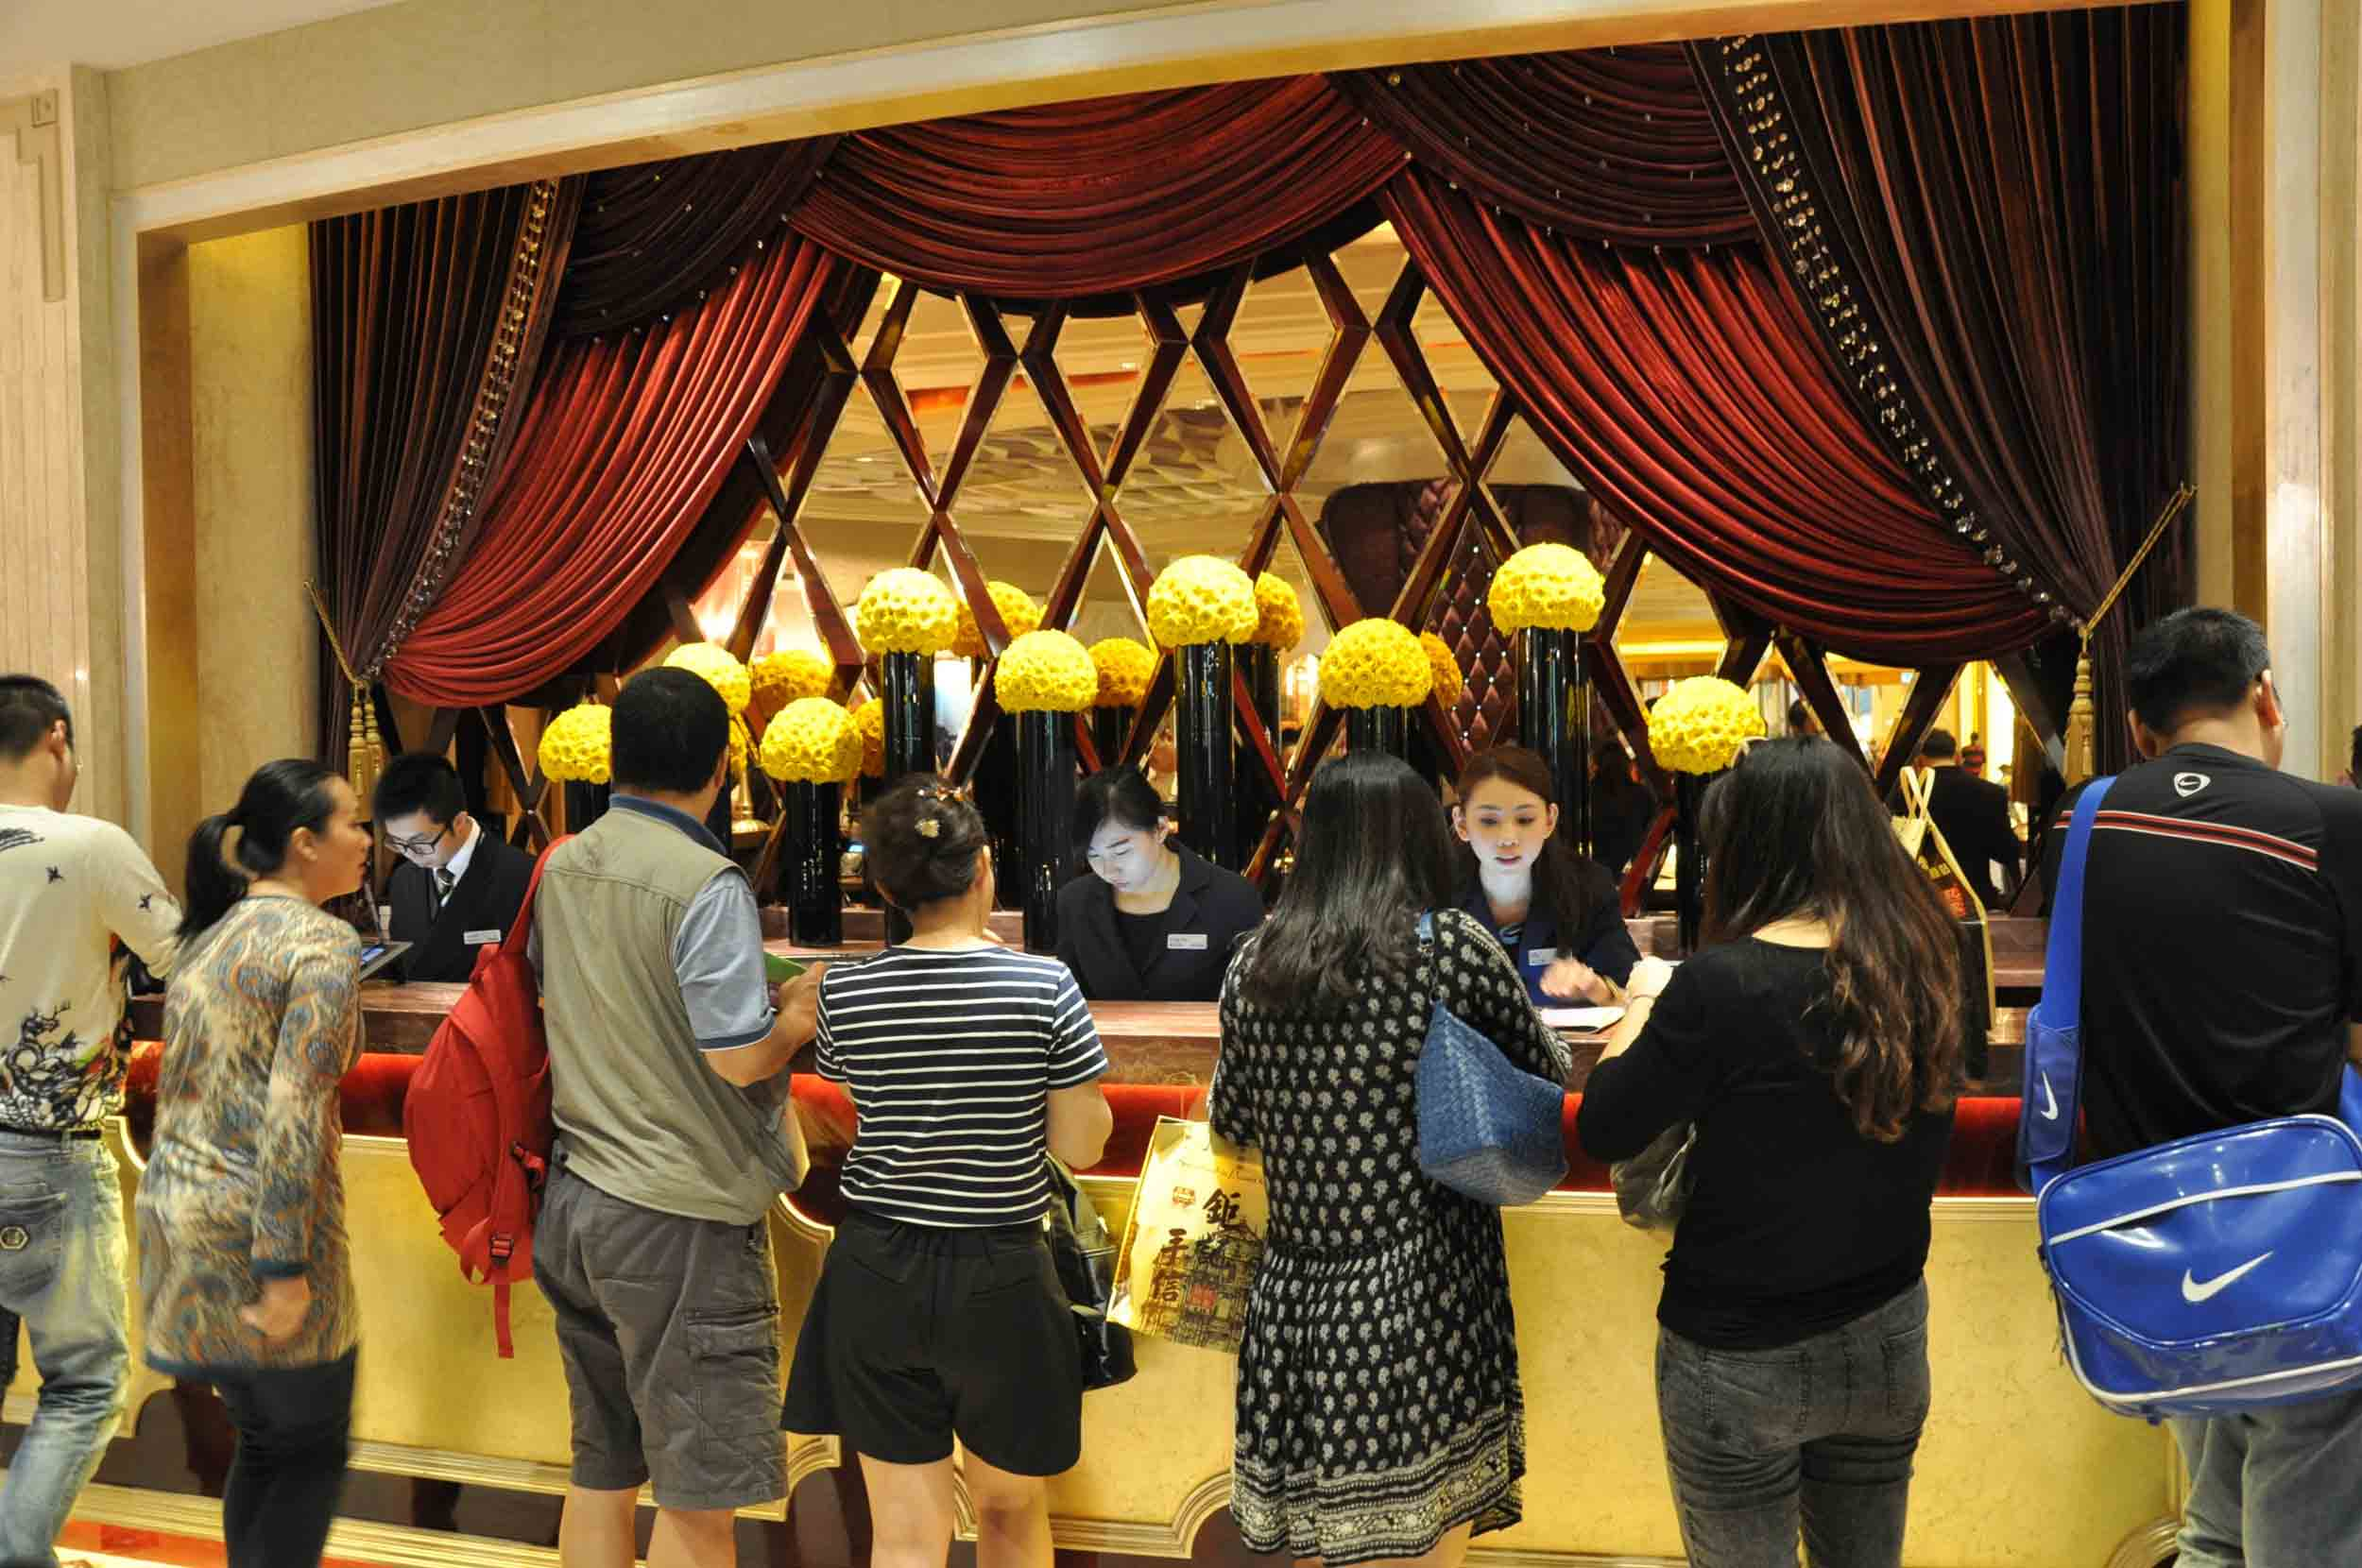 Studio City Macau Celebrity Tower front desk